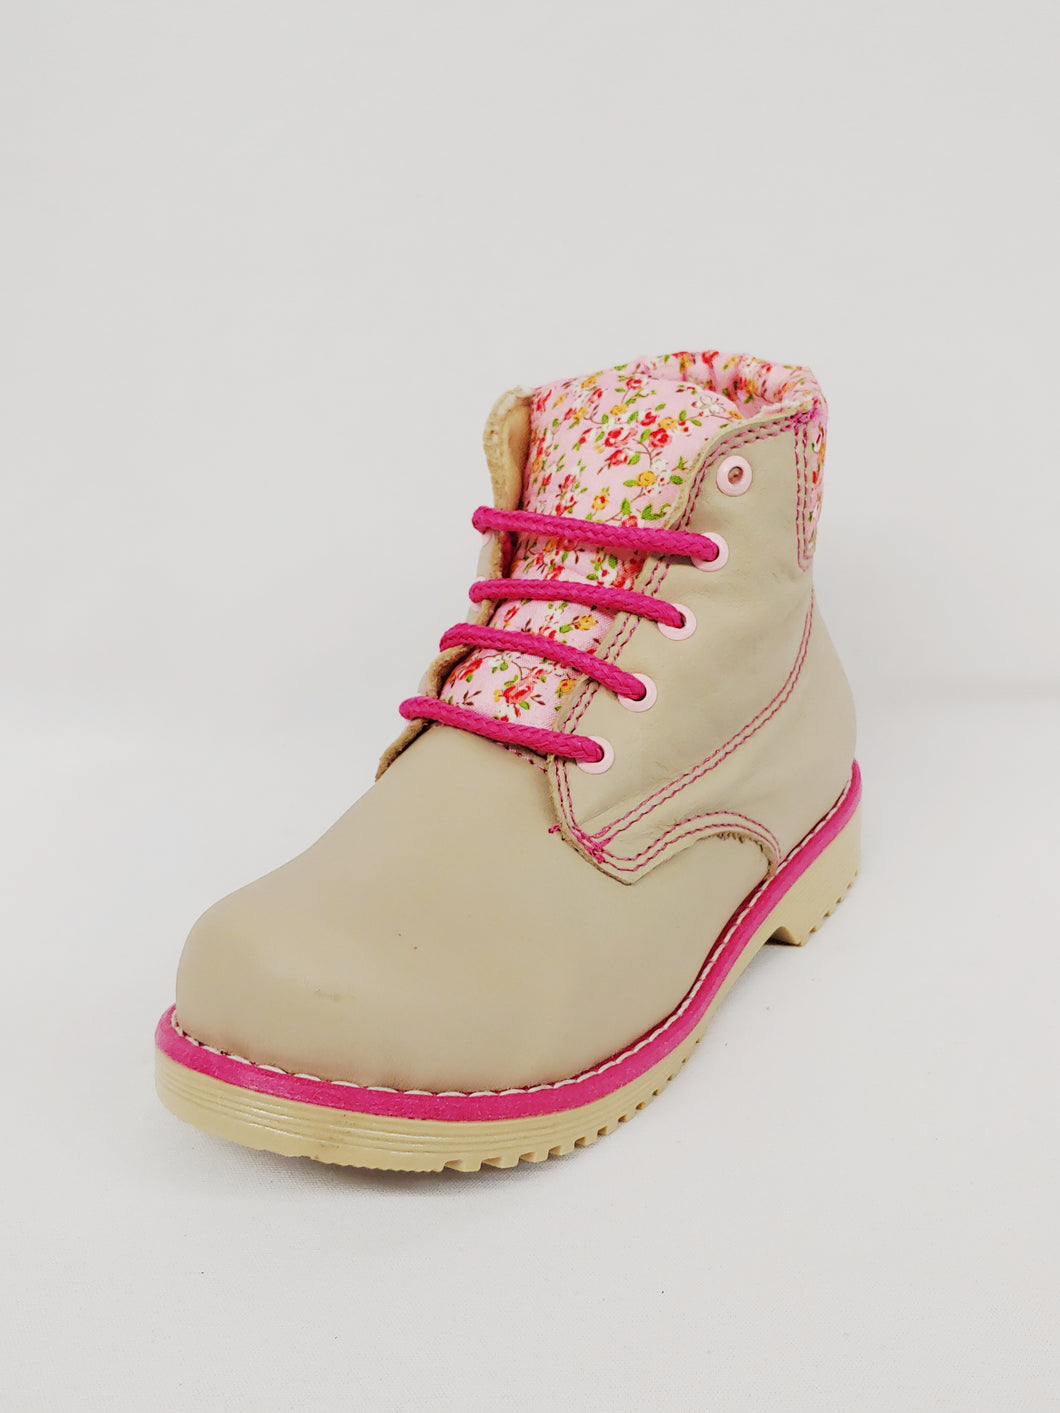 Cappuccino Colored Ankle Boot with Pink Flowered Design